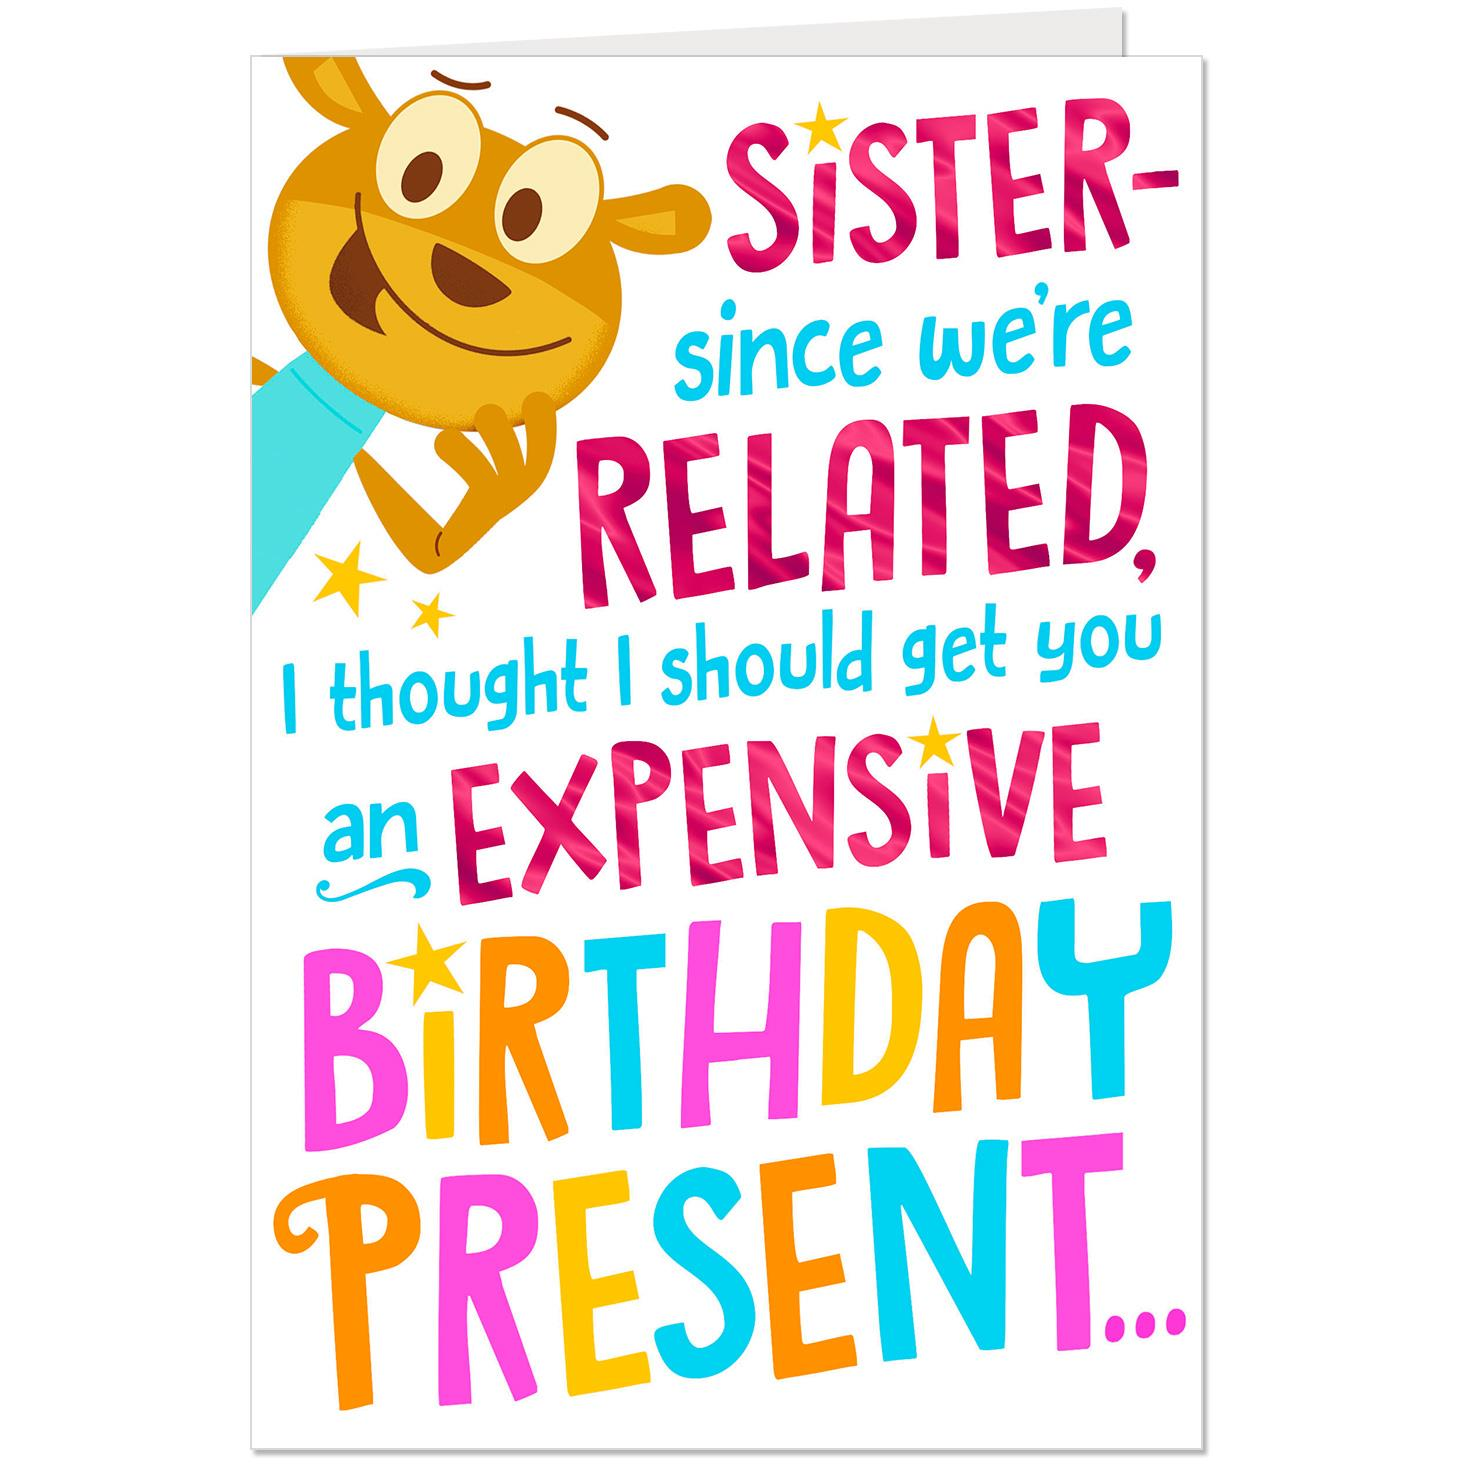 Expensive Birthday Present Funny Birthday Card For Sister